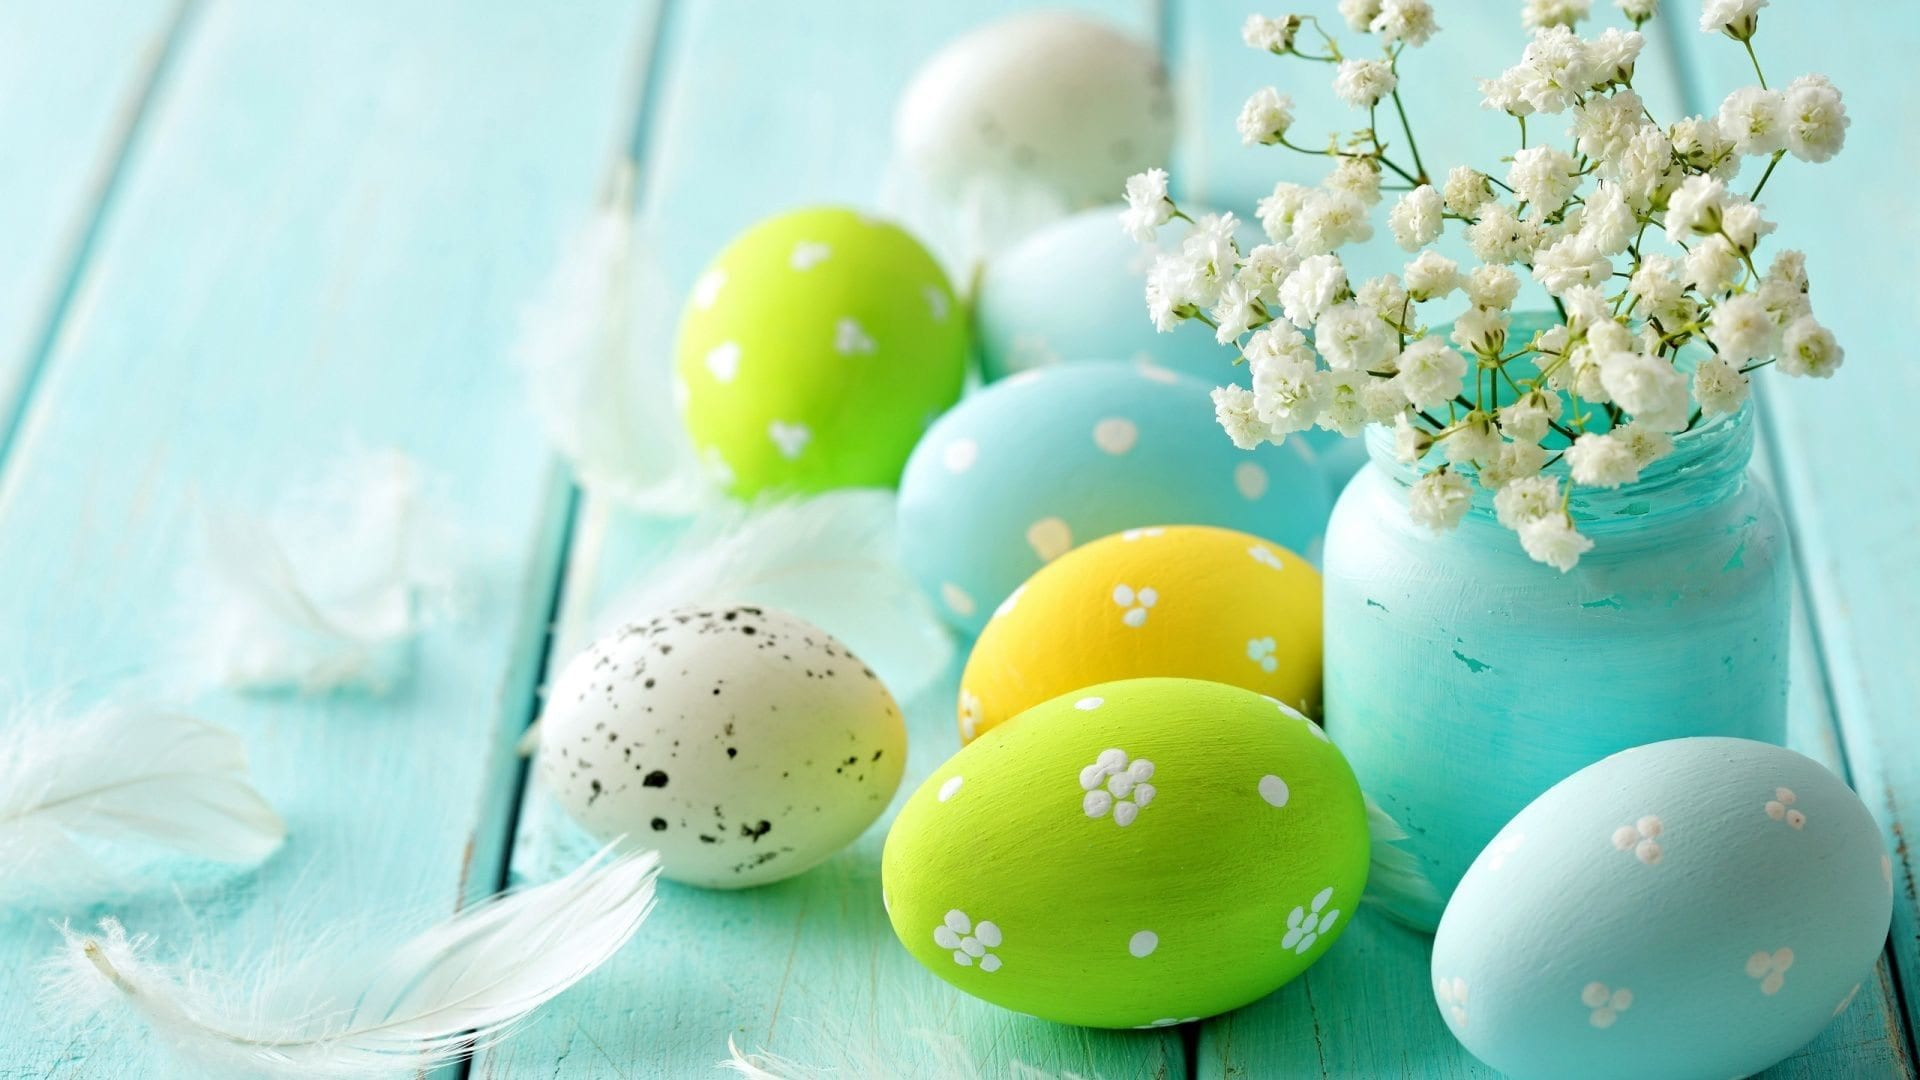 7468_Beautiful-Easter-Eggs-and-blossom-flowers-HD-wallpaper